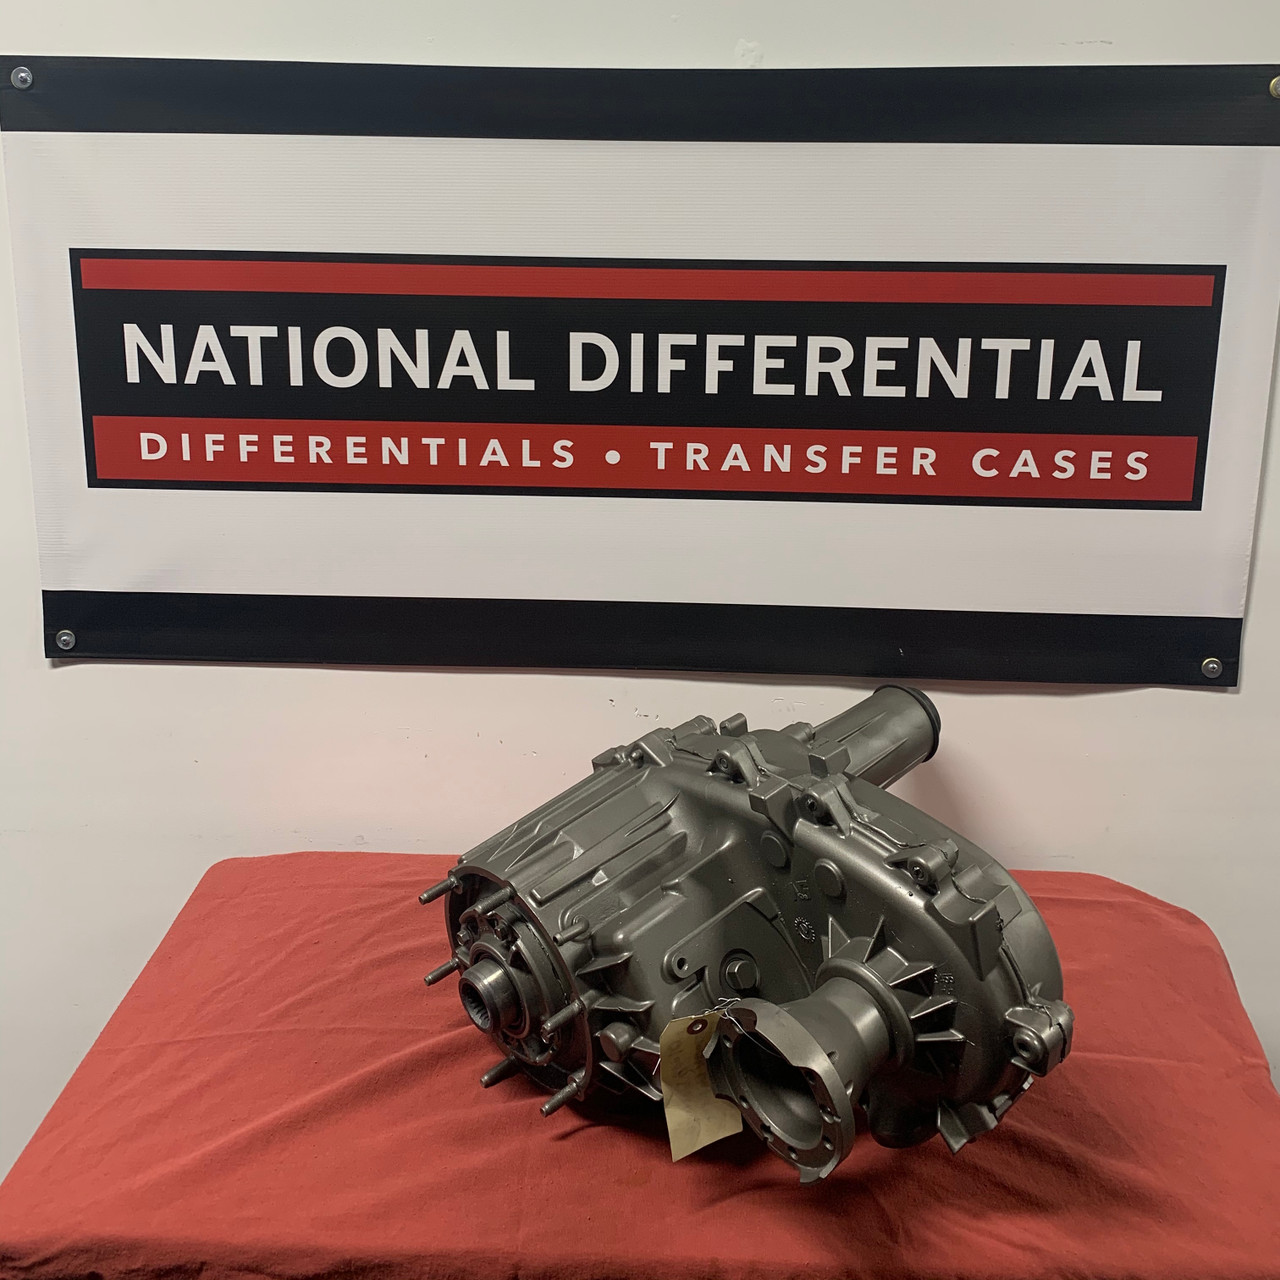 New Process NP 244 Transfer Case for 2001-2003 Dodge Durango with Manual Shift.